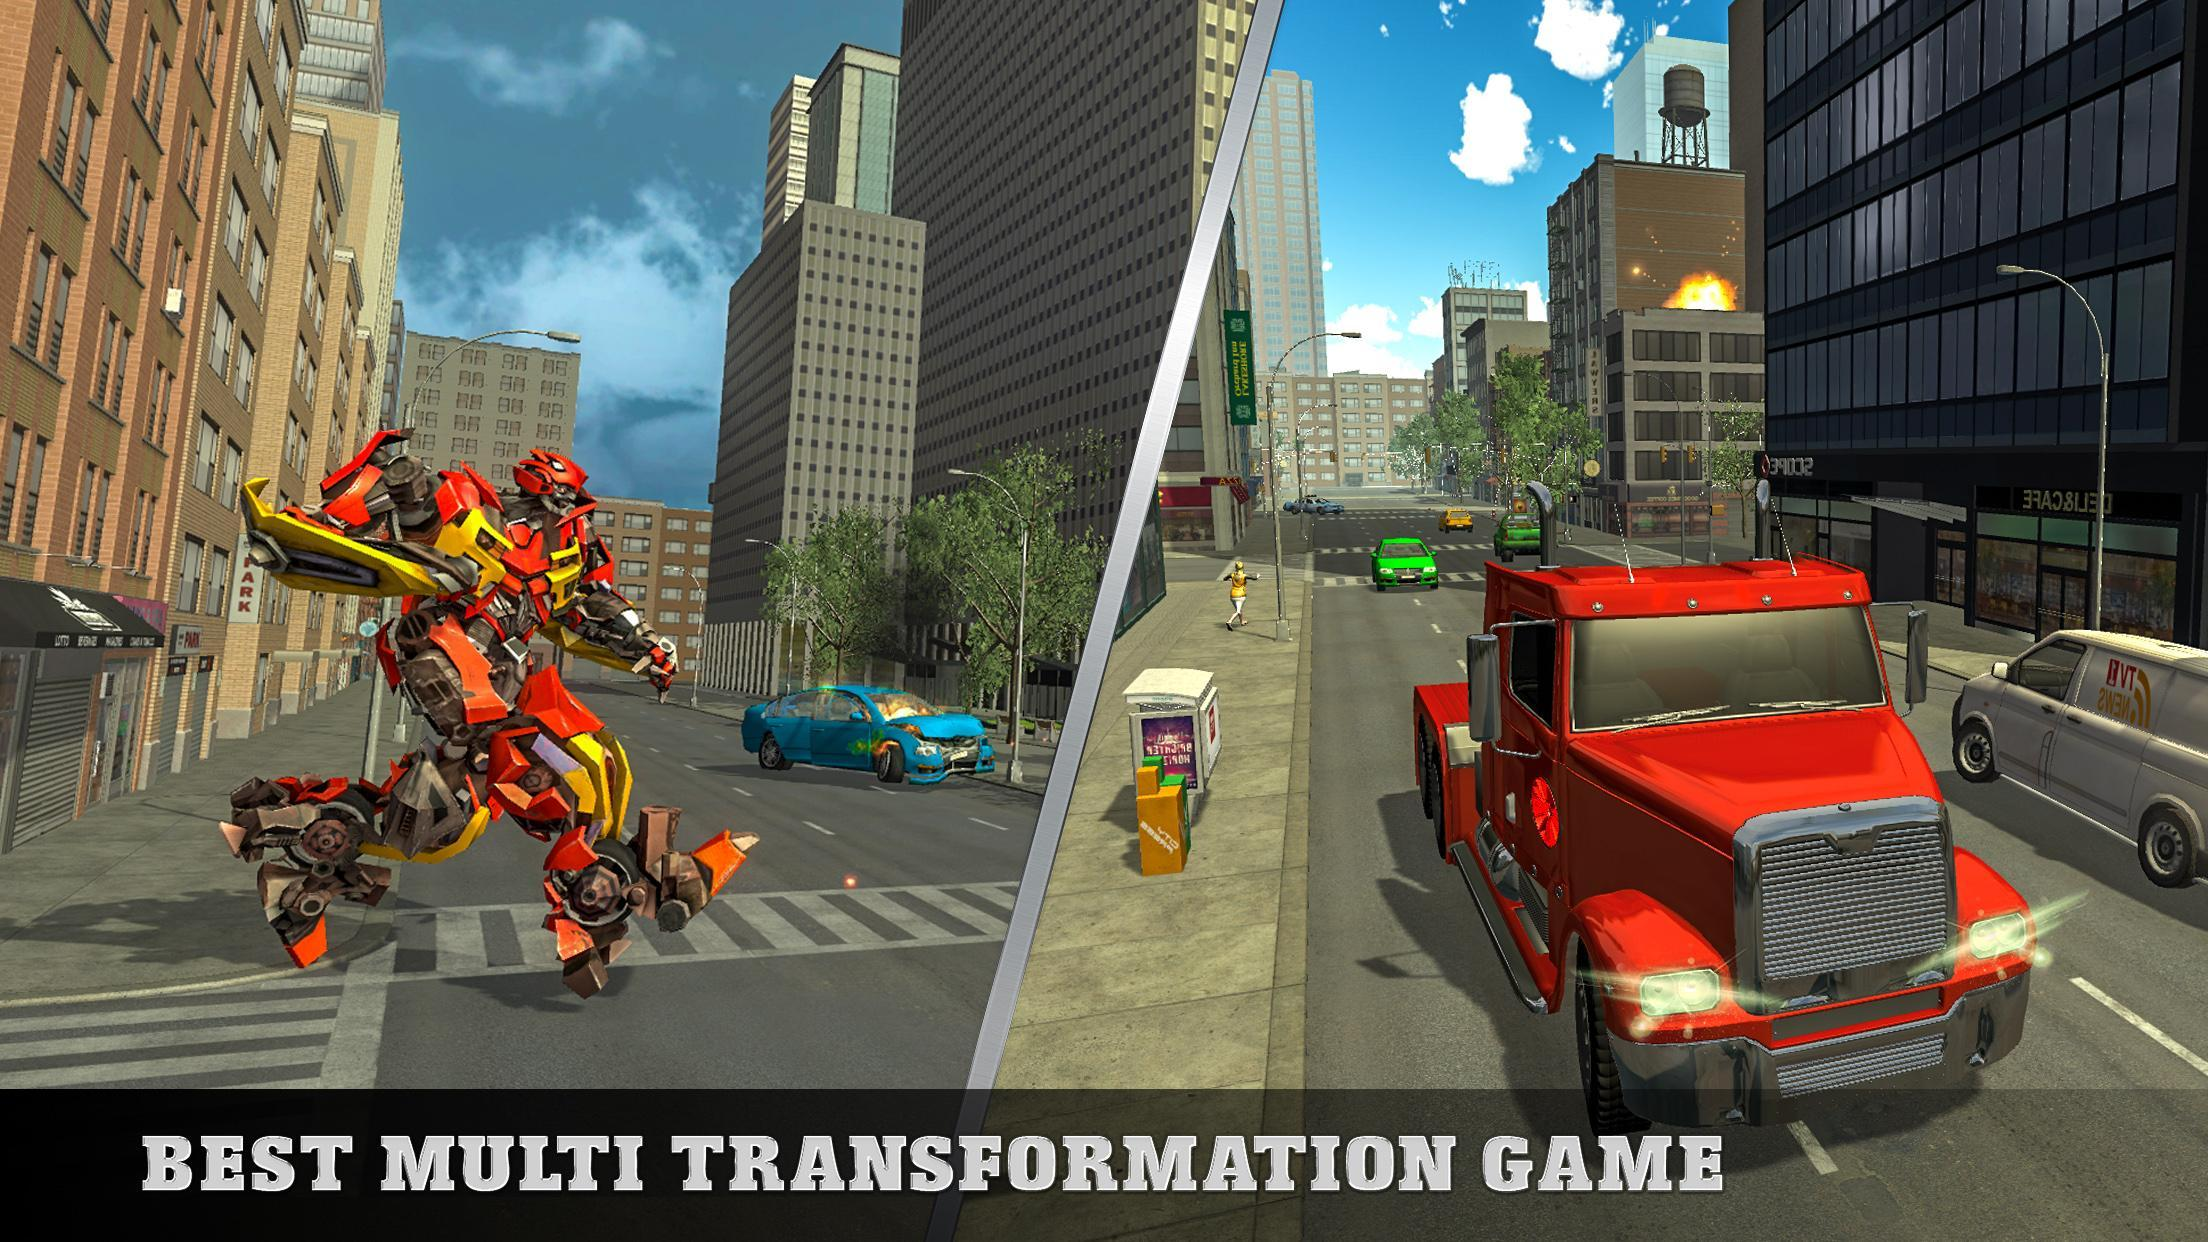 Euro Truck Robot Game Transforming Robot Simulator for Android - APK